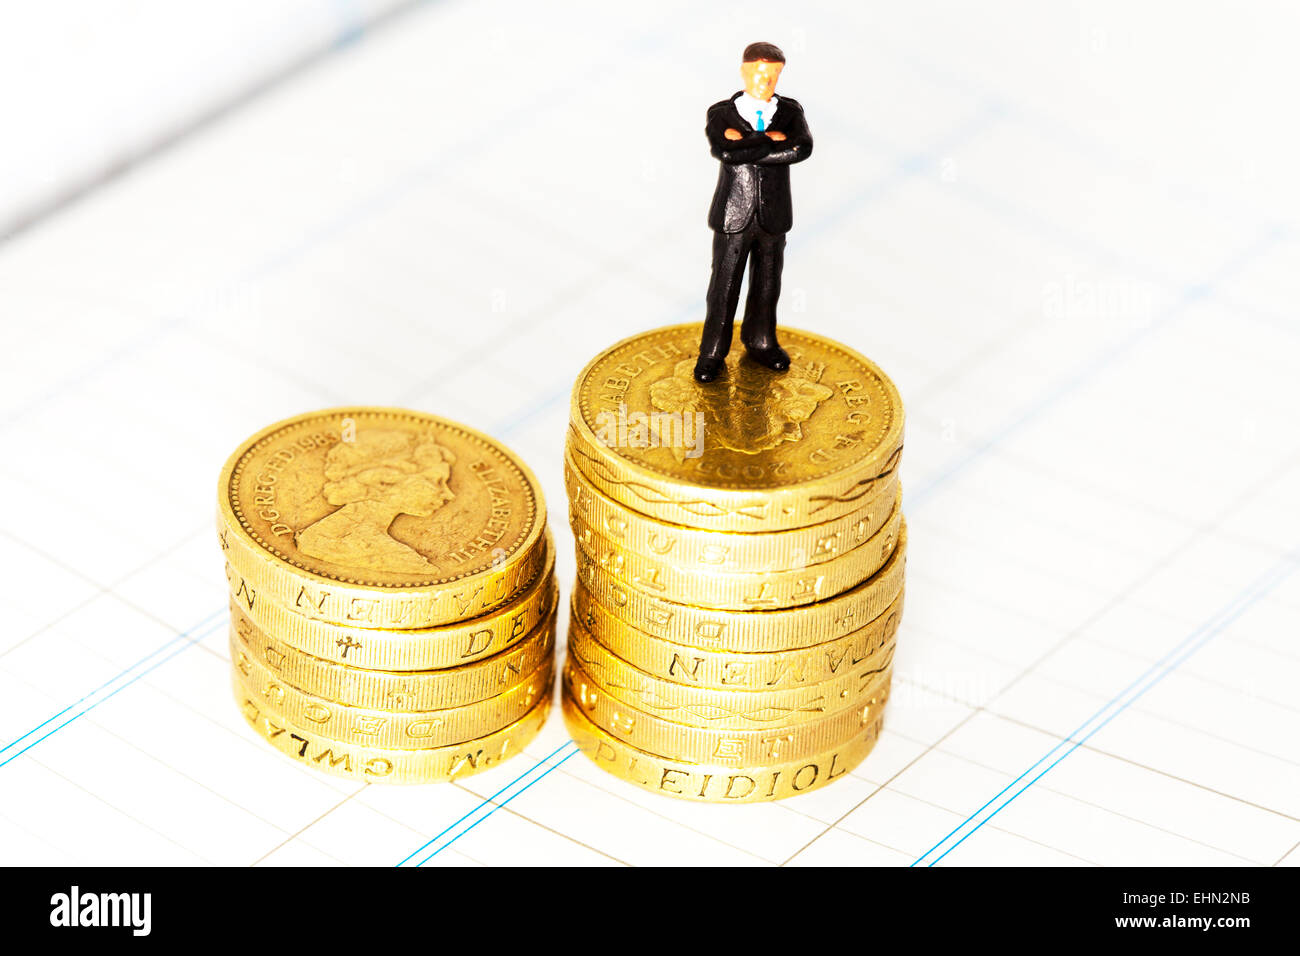 Accounts accountant accounting pound coins on spreadsheet business bookwork tax vat isolated cut out cutout white - Stock Image